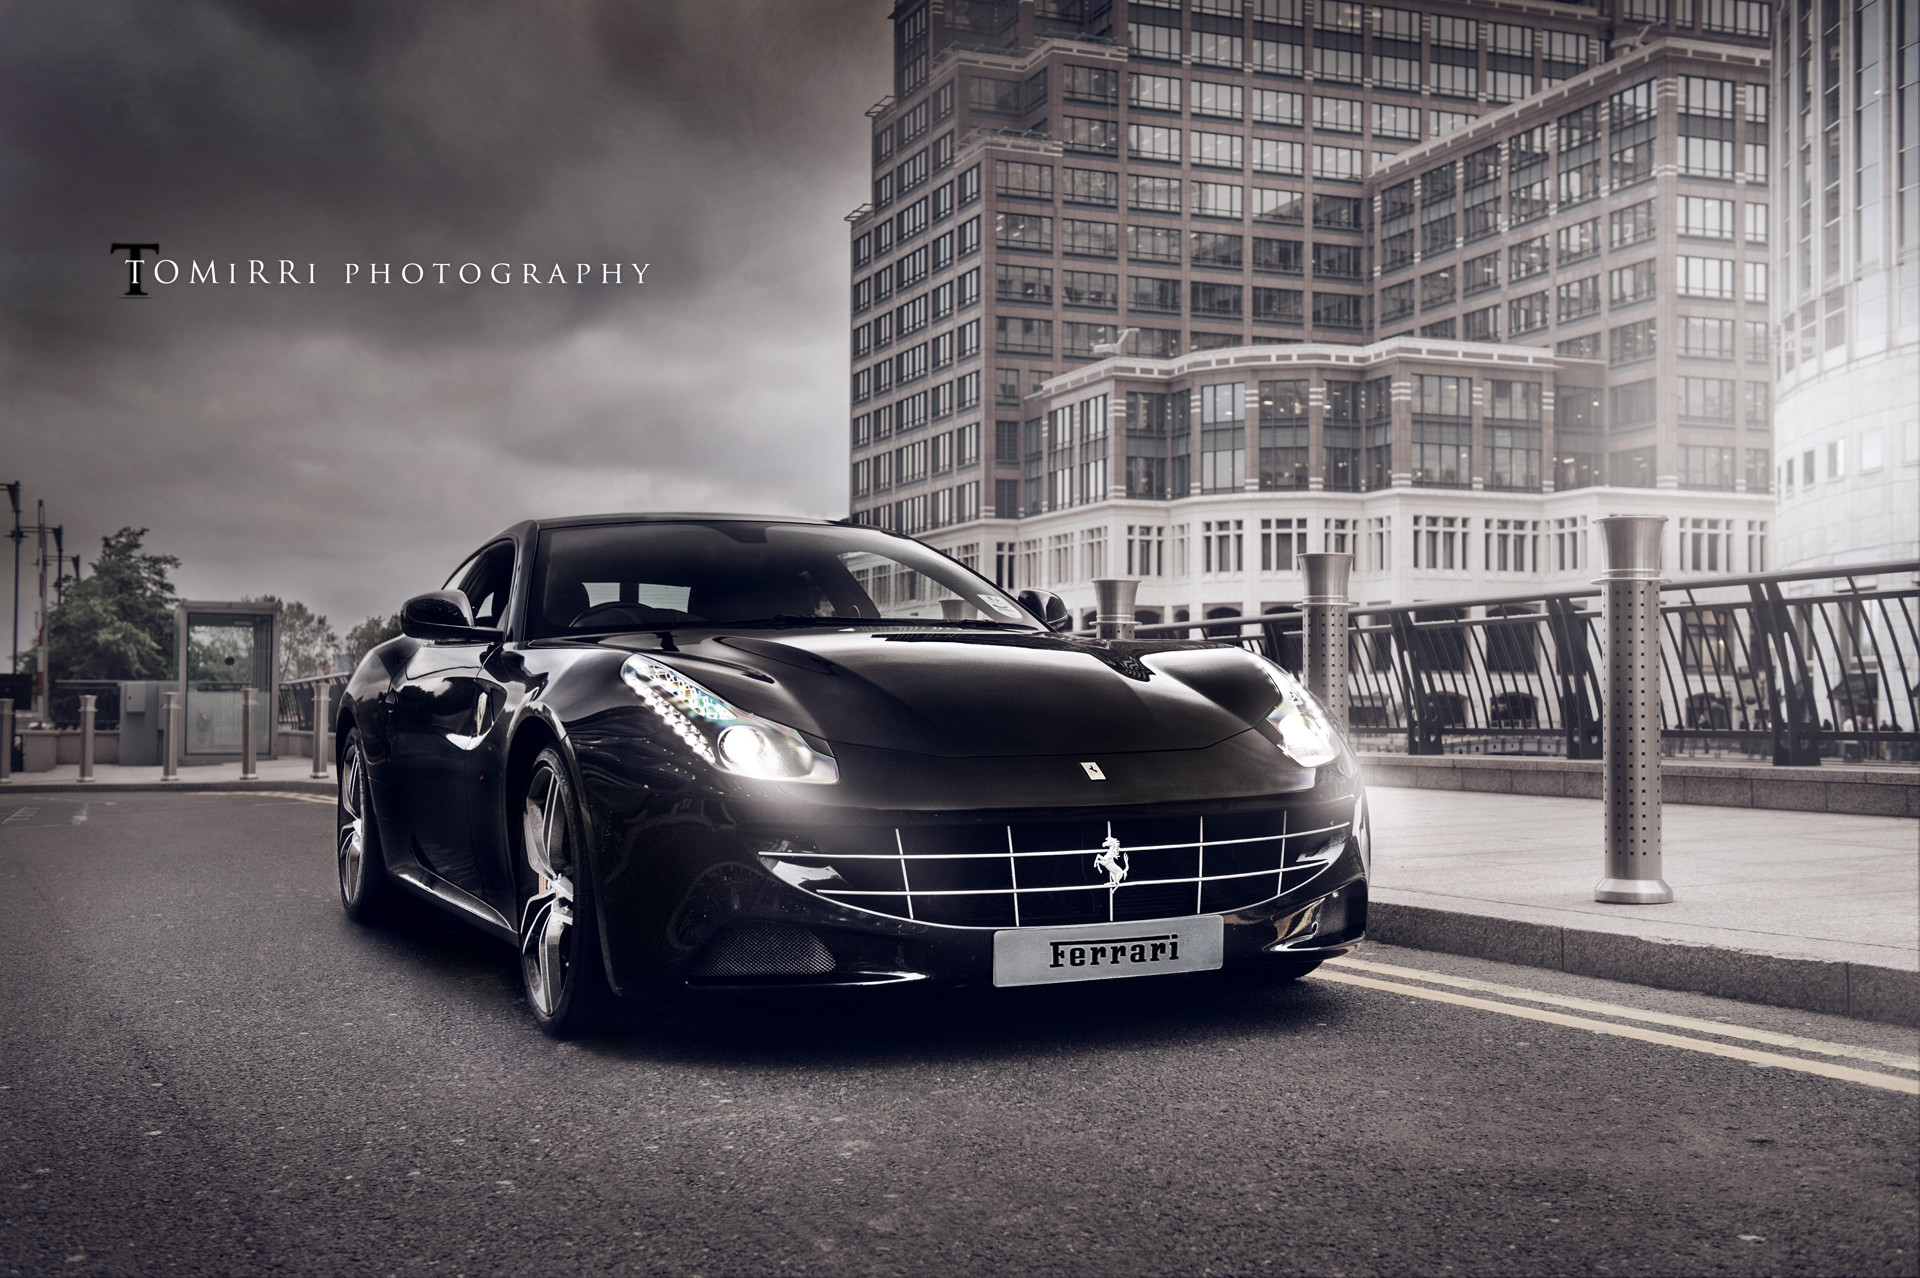 Res: 1920x1278, Black Ferrari FF Photoshoot By Tomirri Photography Wallpapers